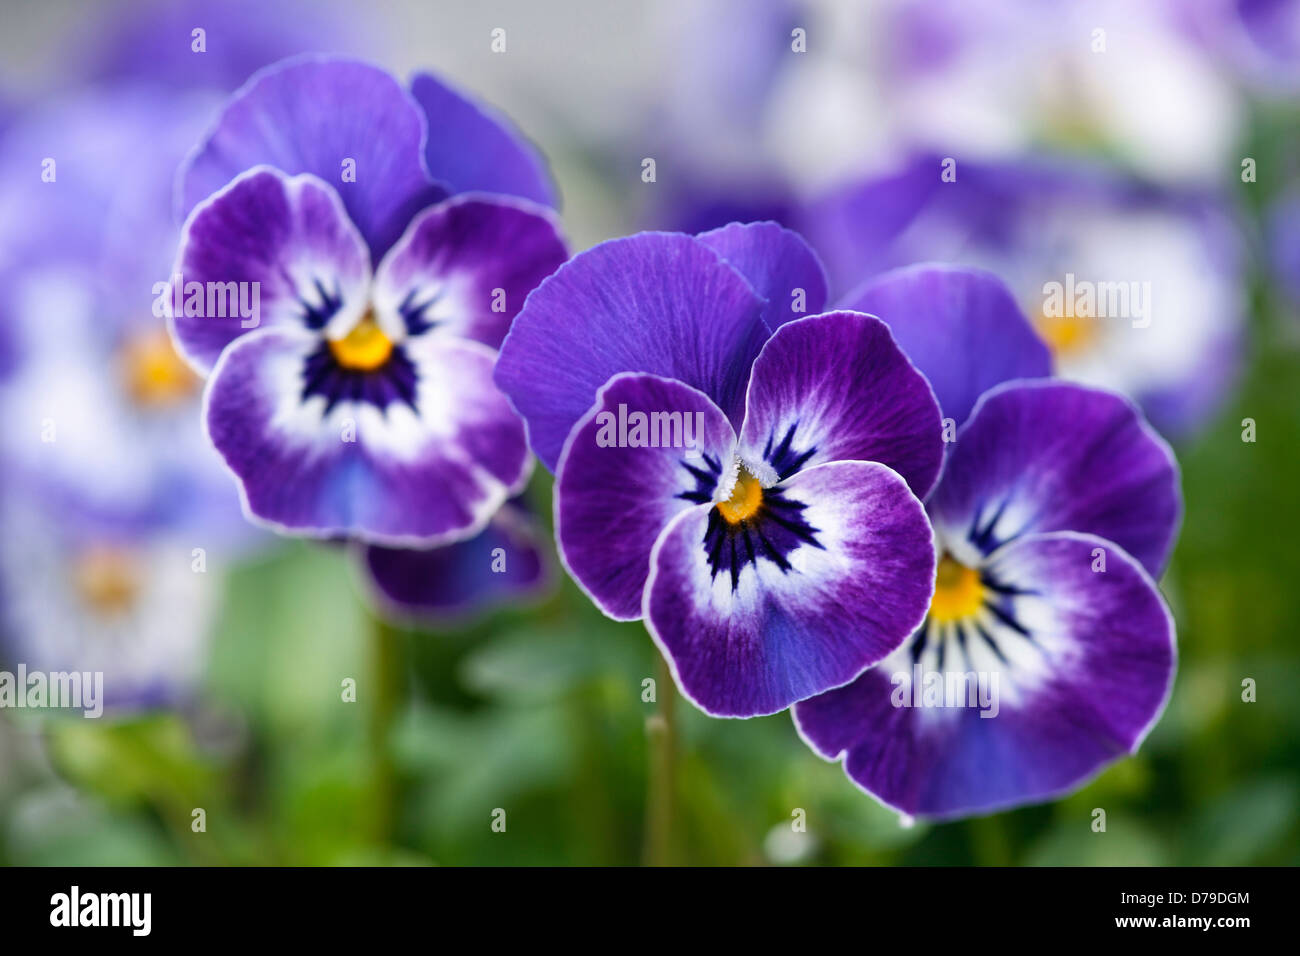 F1 viola delft blue three flowers with blue and white petals and f1 viola delft blue three flowers with blue and white petals and yellow at centre dhlflorist Image collections